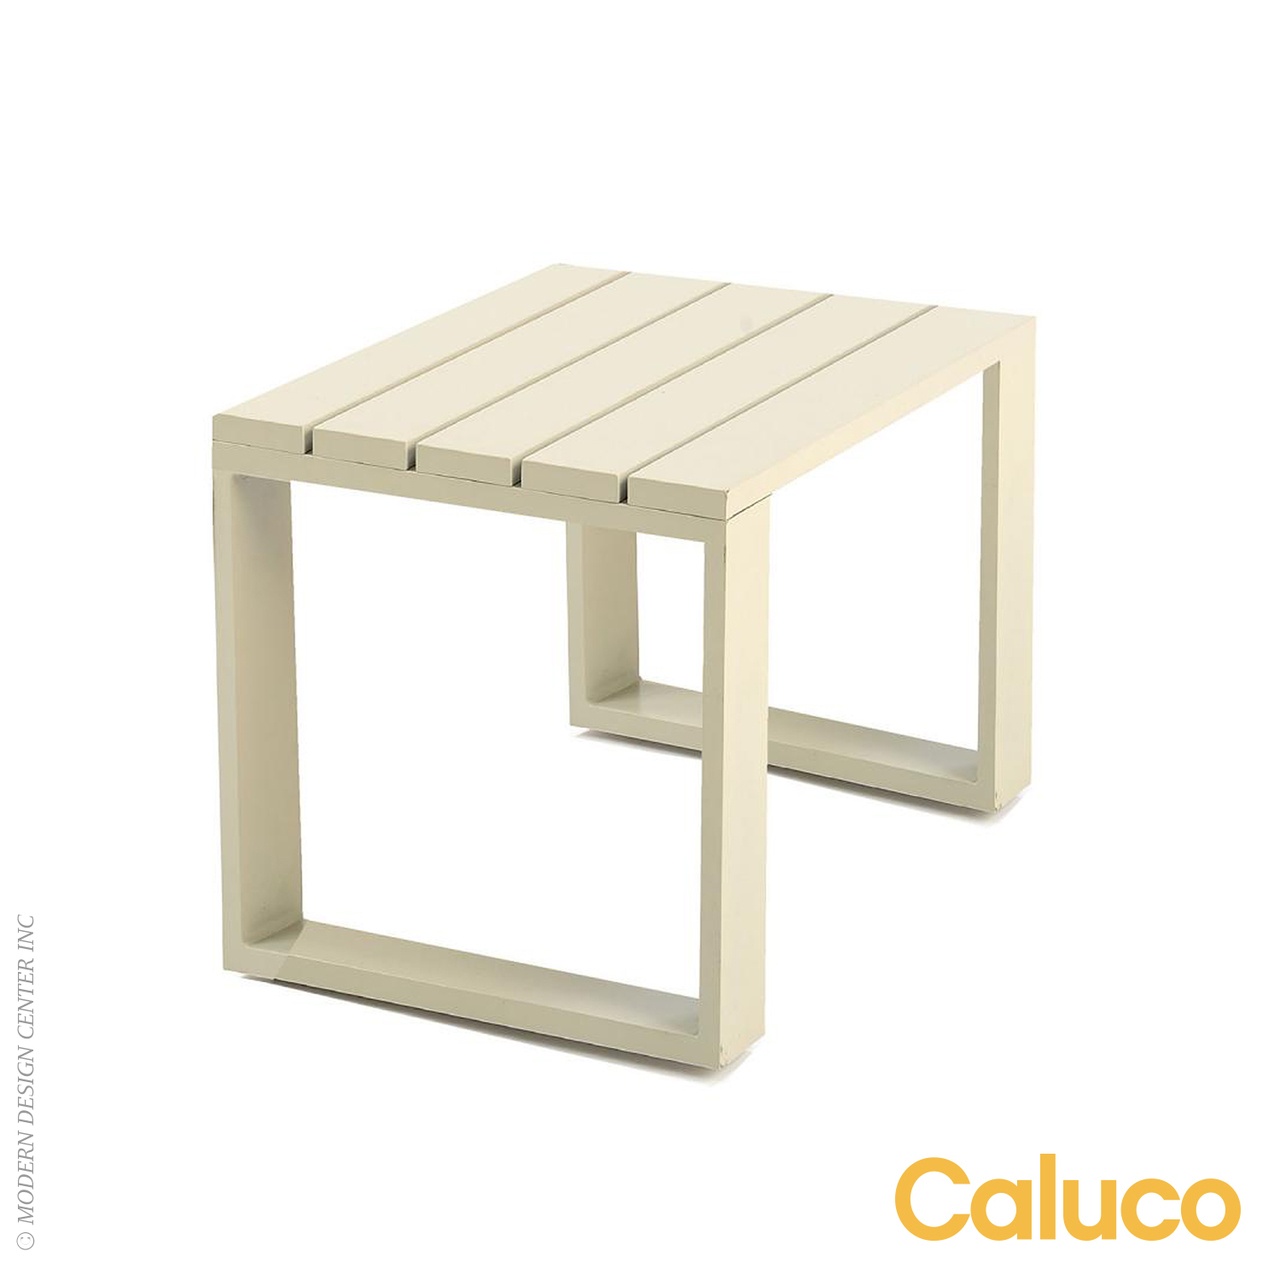 Space End Table | Caluco Patio Furniture